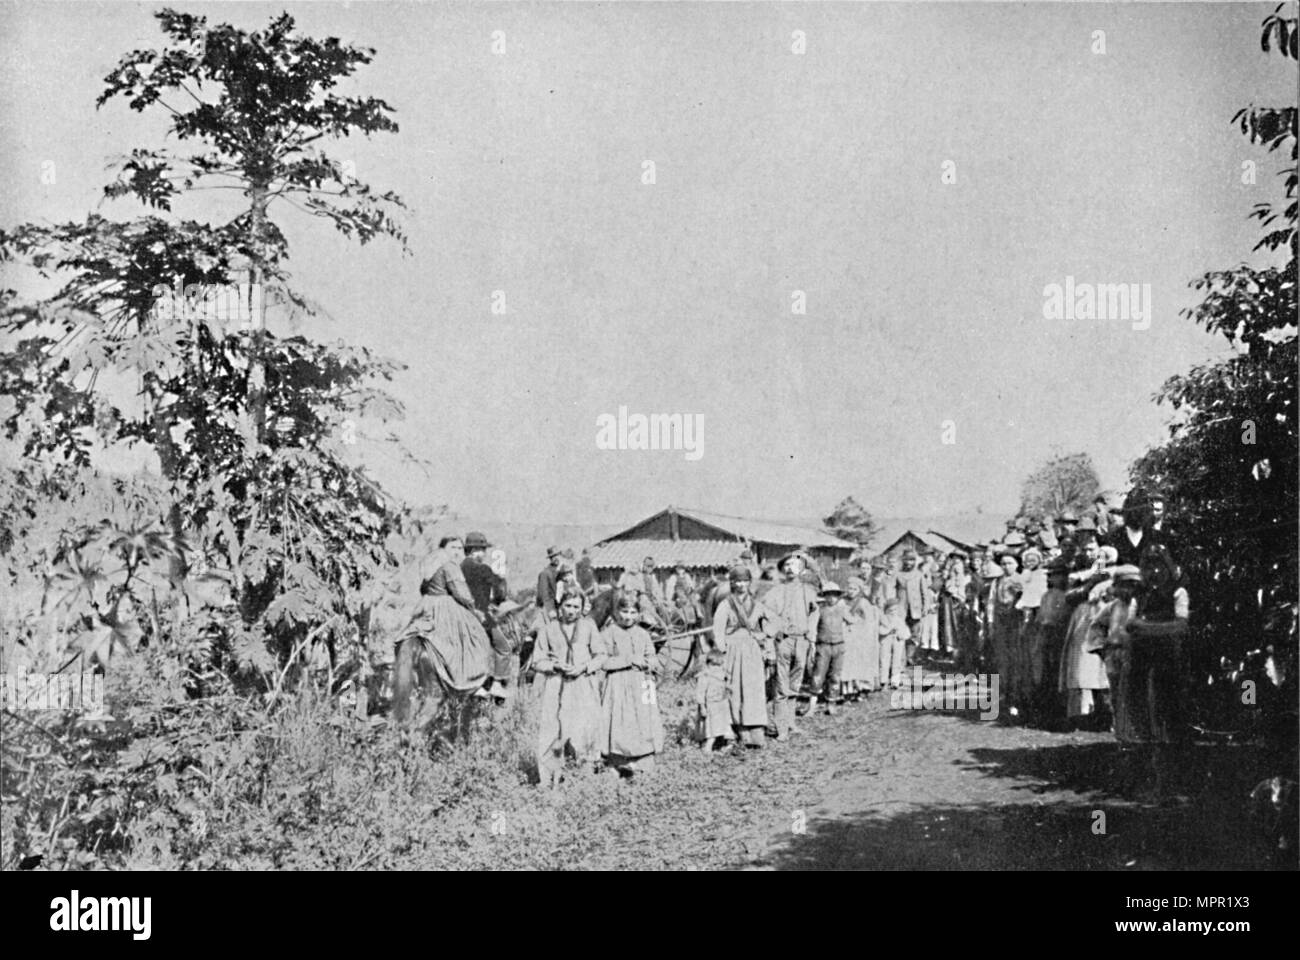 'Festa em uma Colonia', (Party in a colony), 1895. Artist: Axel Frick. - Stock Image